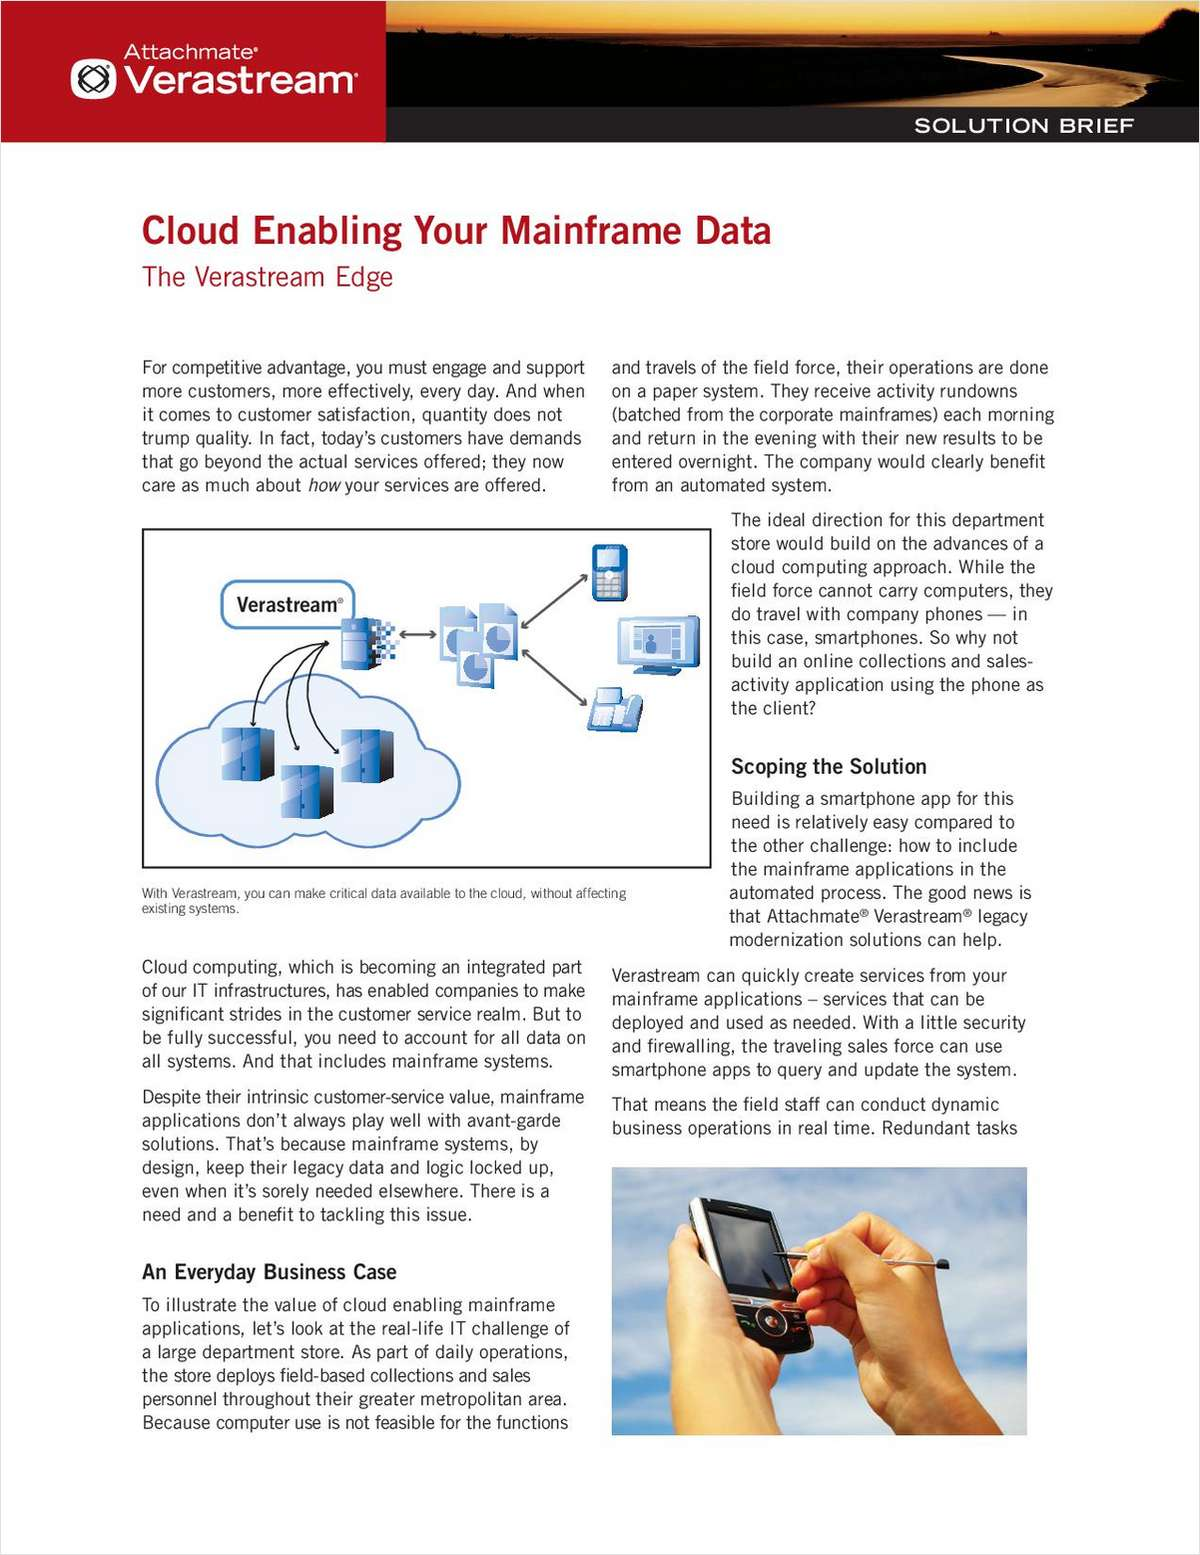 Cloud Enabling Your Mainframe Data: The Verastream Edge